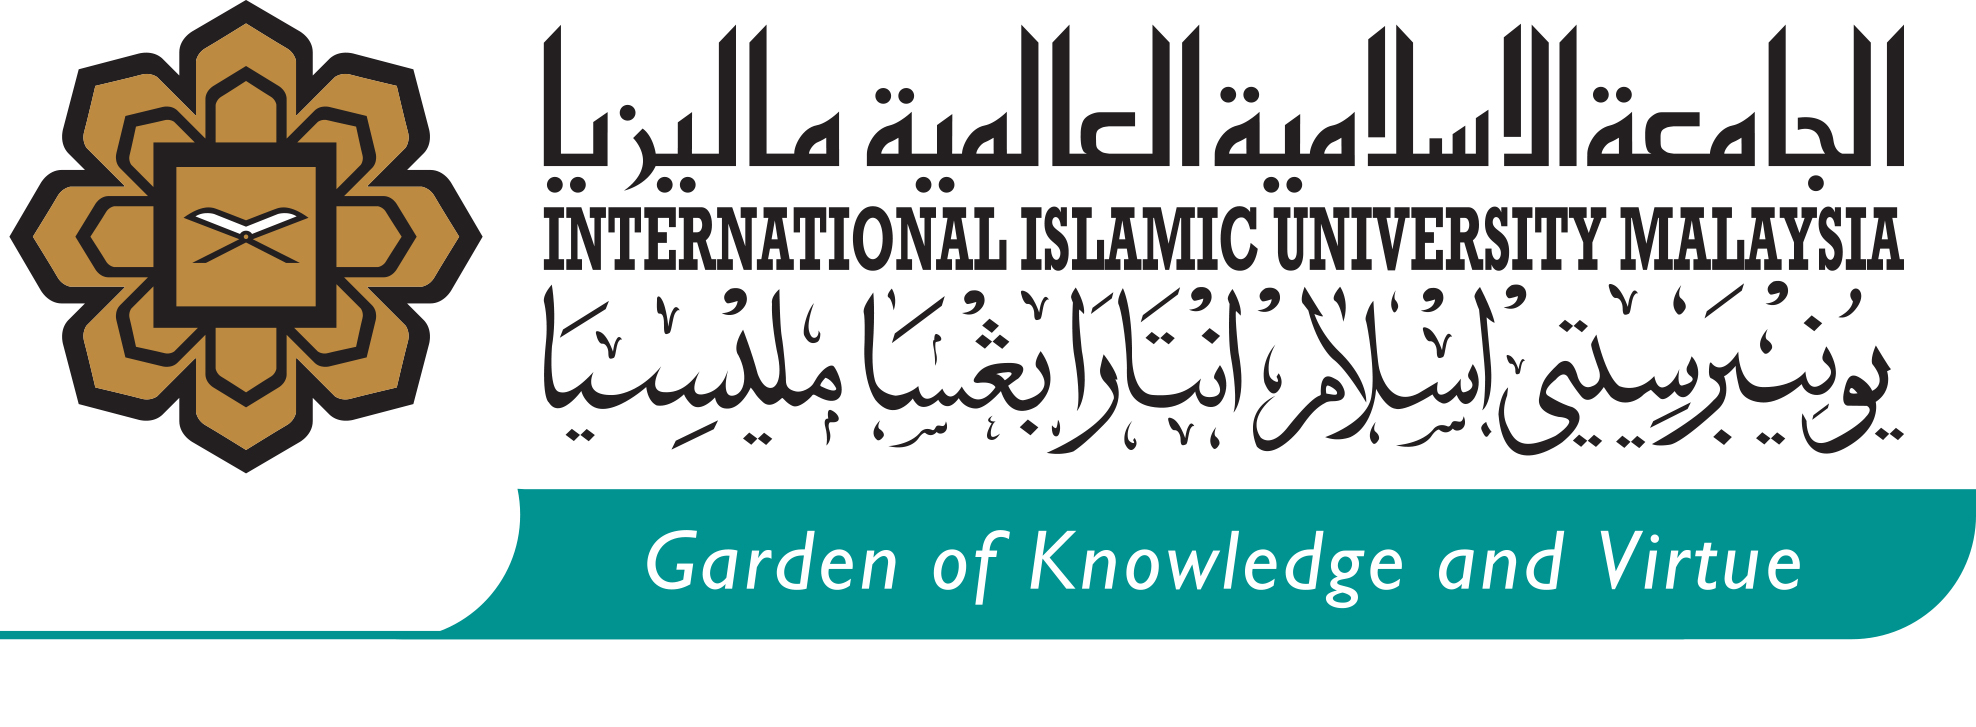 UNDERGRADUATE AND POSTGRADUATE INTERNATIONAL STUDENT ADMISSION